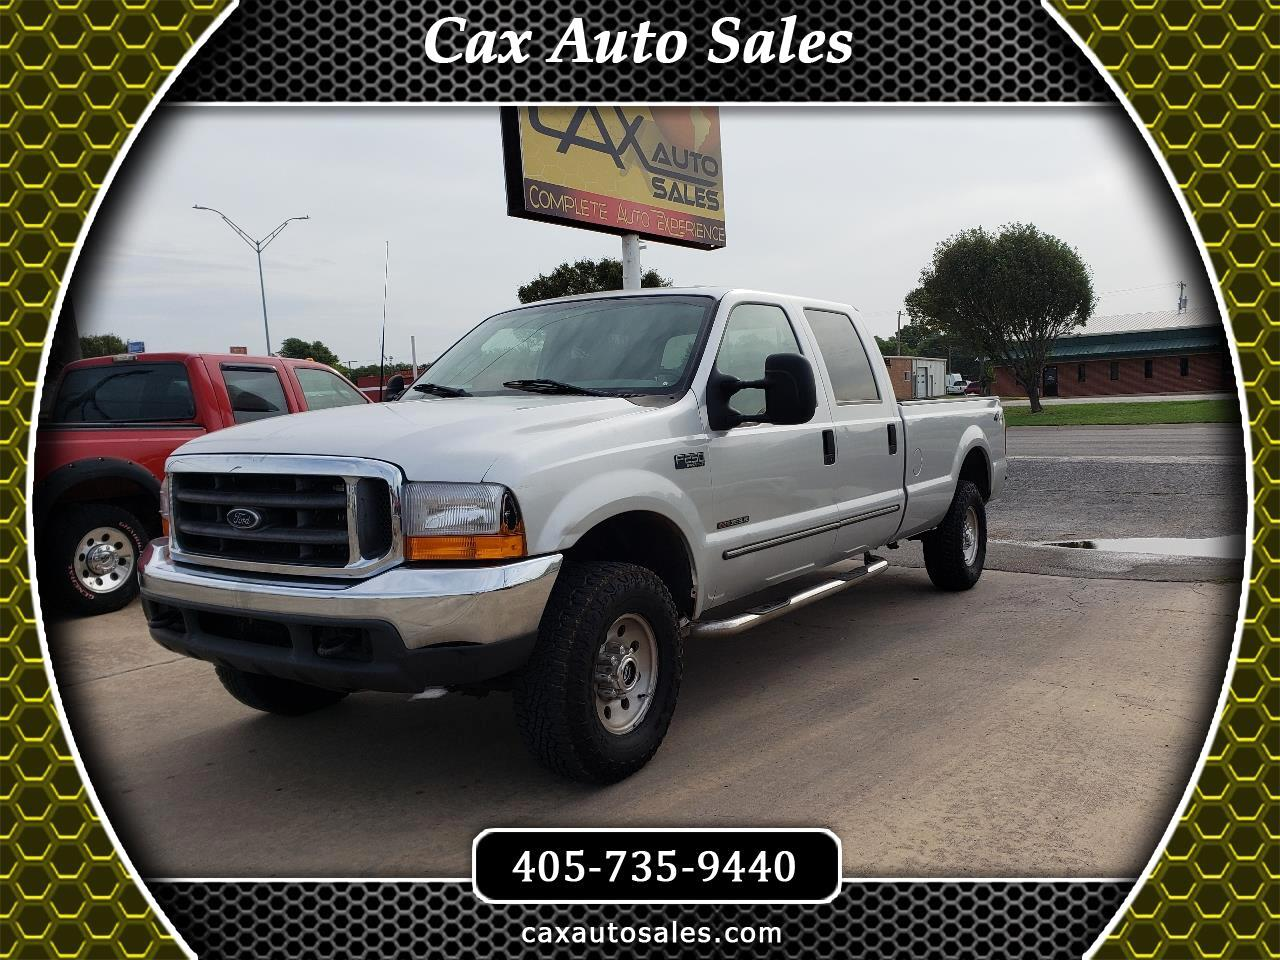 Ford F-250 SD XLT Crew Cab Long Bed 4WD 2000